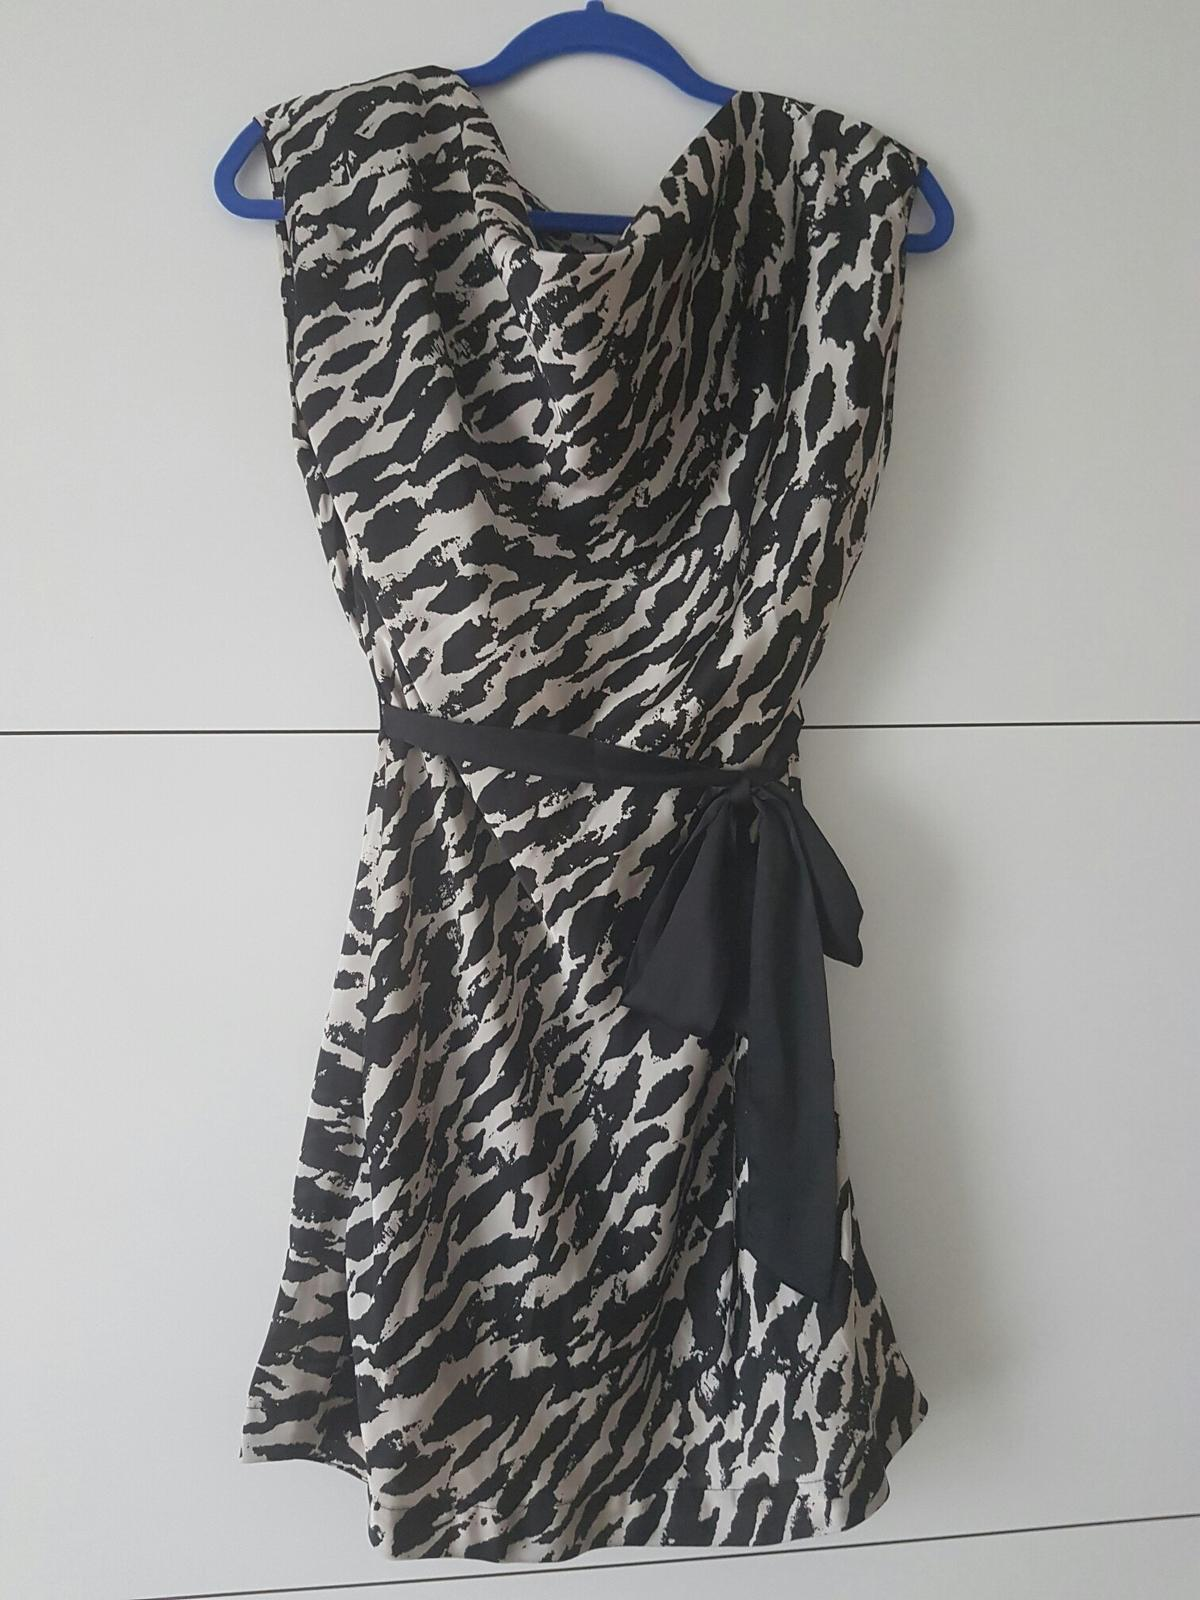 h&m kleid gr. 36 animal print in 45257 essen for €4.00 for